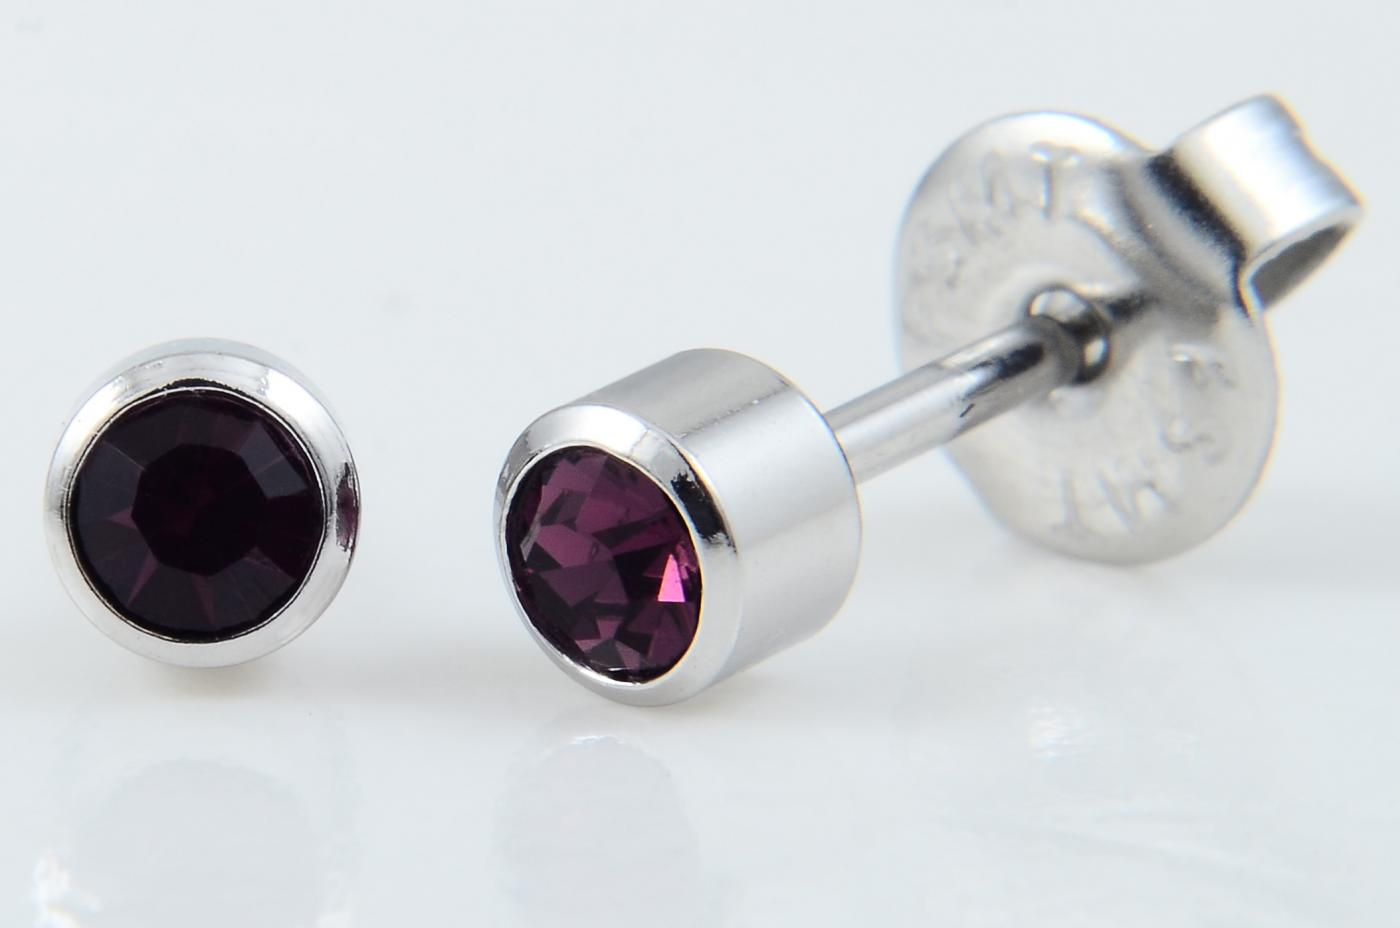 21-302 Bezel Birthstone,Amethyst SS (previously 214) image